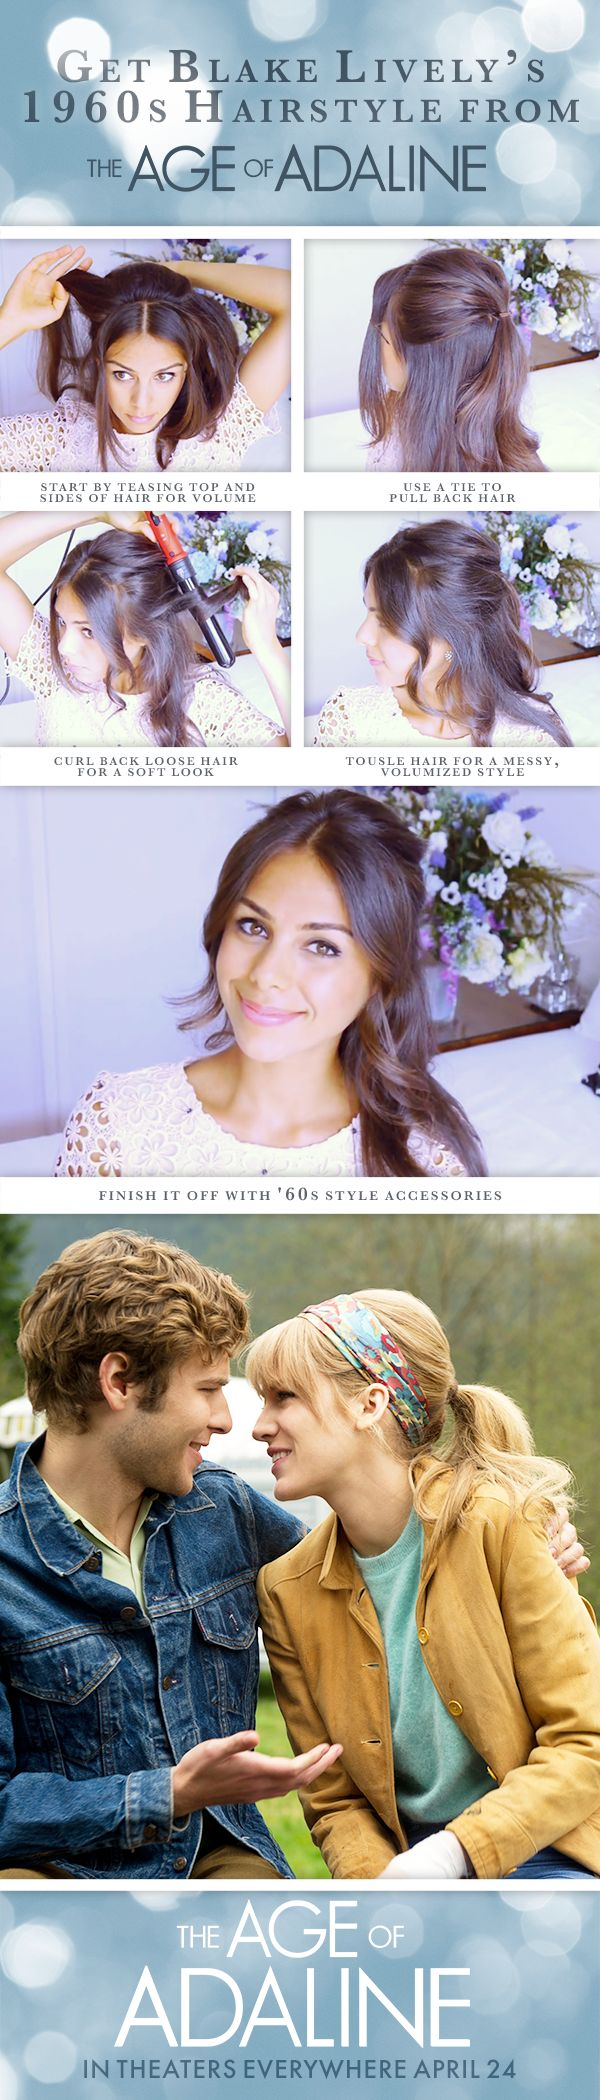 Take a trip back to the summer of love with this 1960's hair tutorial inspired by Adaline. Watch her incredible journey unfold over a century in The Age of Adaline, starring Blake Lively - In theaters everywhere April 24, 2015!